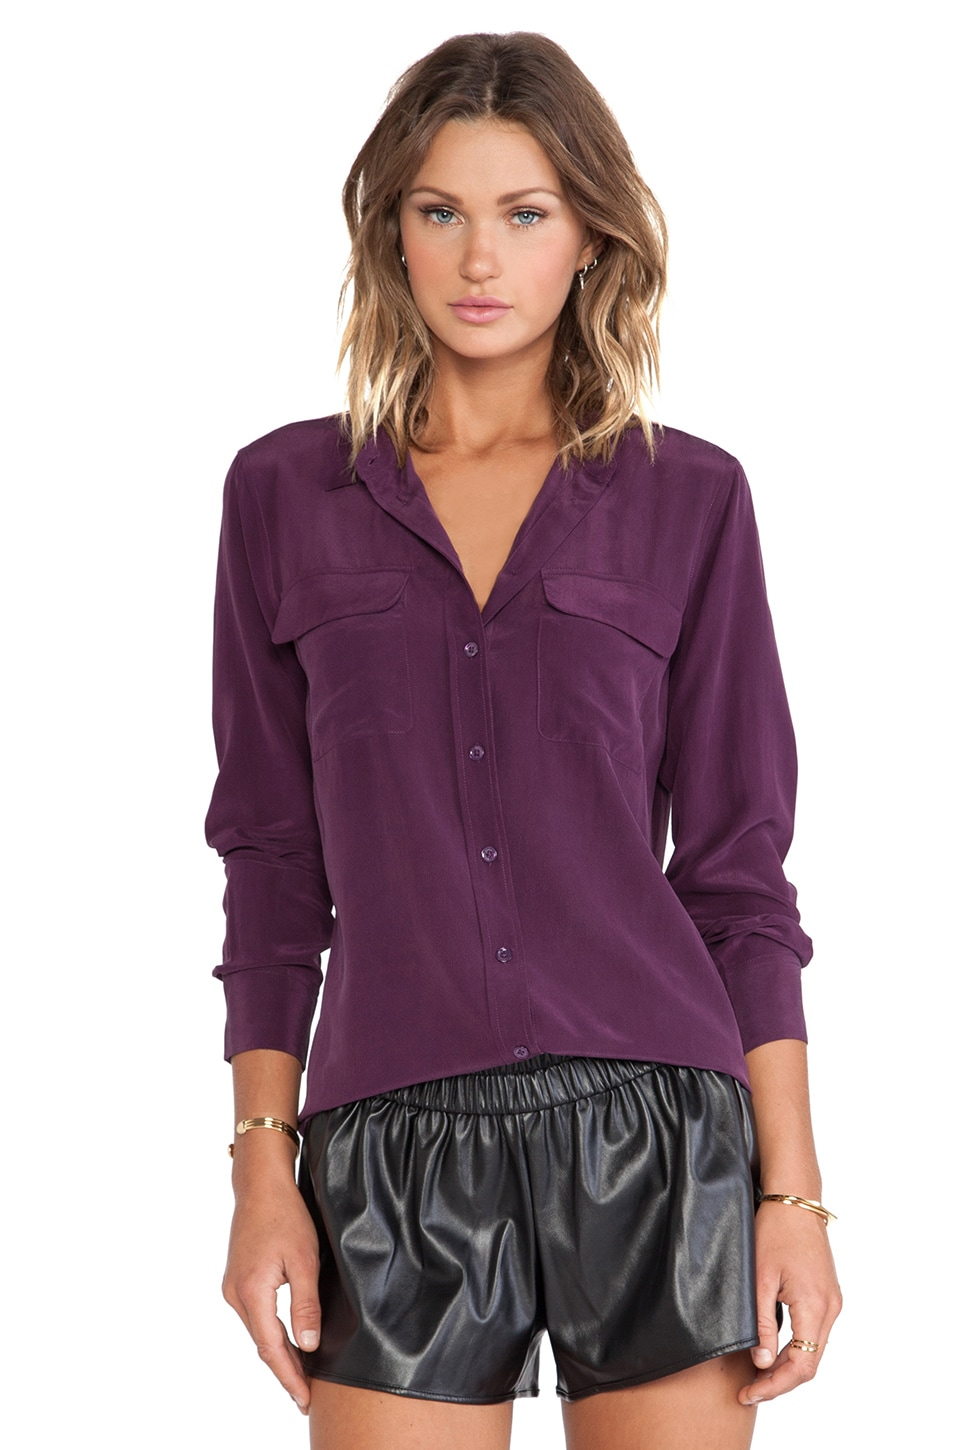 Equipment Slim Signature Blouse in Cabernet